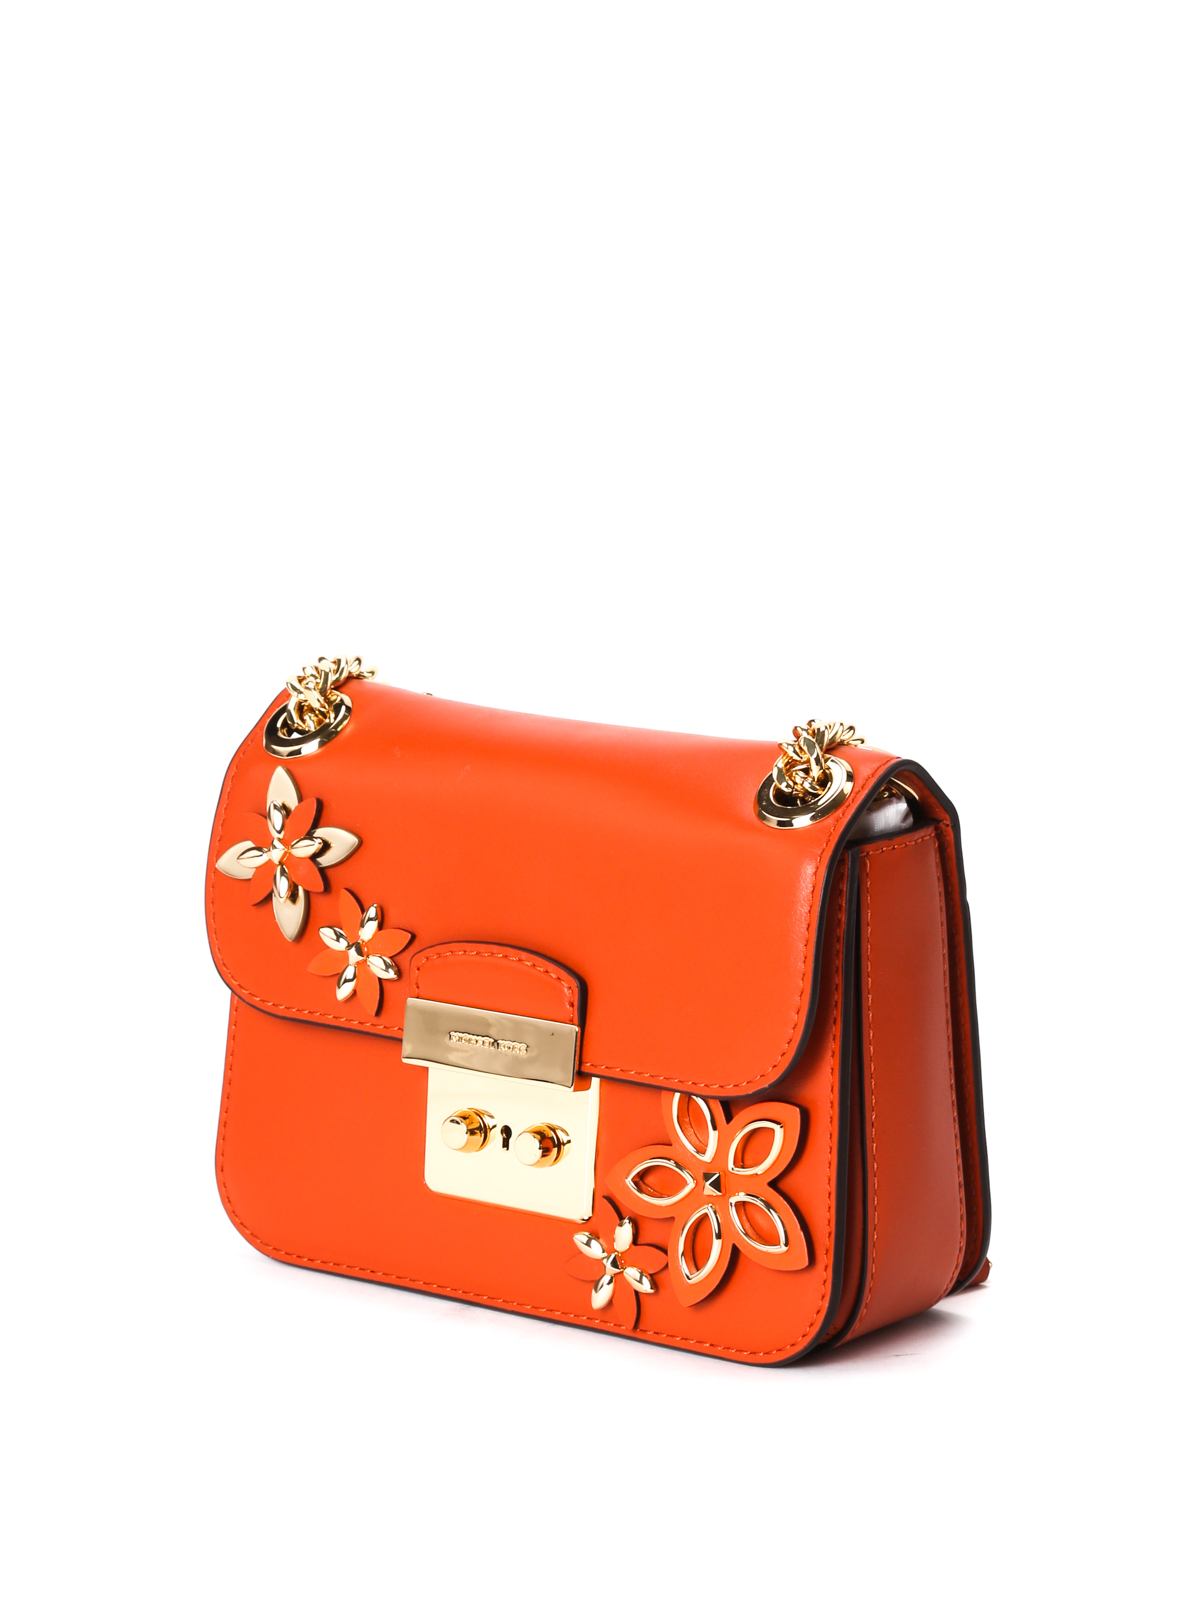 ab3a16e99ecb ... purchase michael kors shoulder bags online sloan flower appliqué small  bag 008f3 bf815